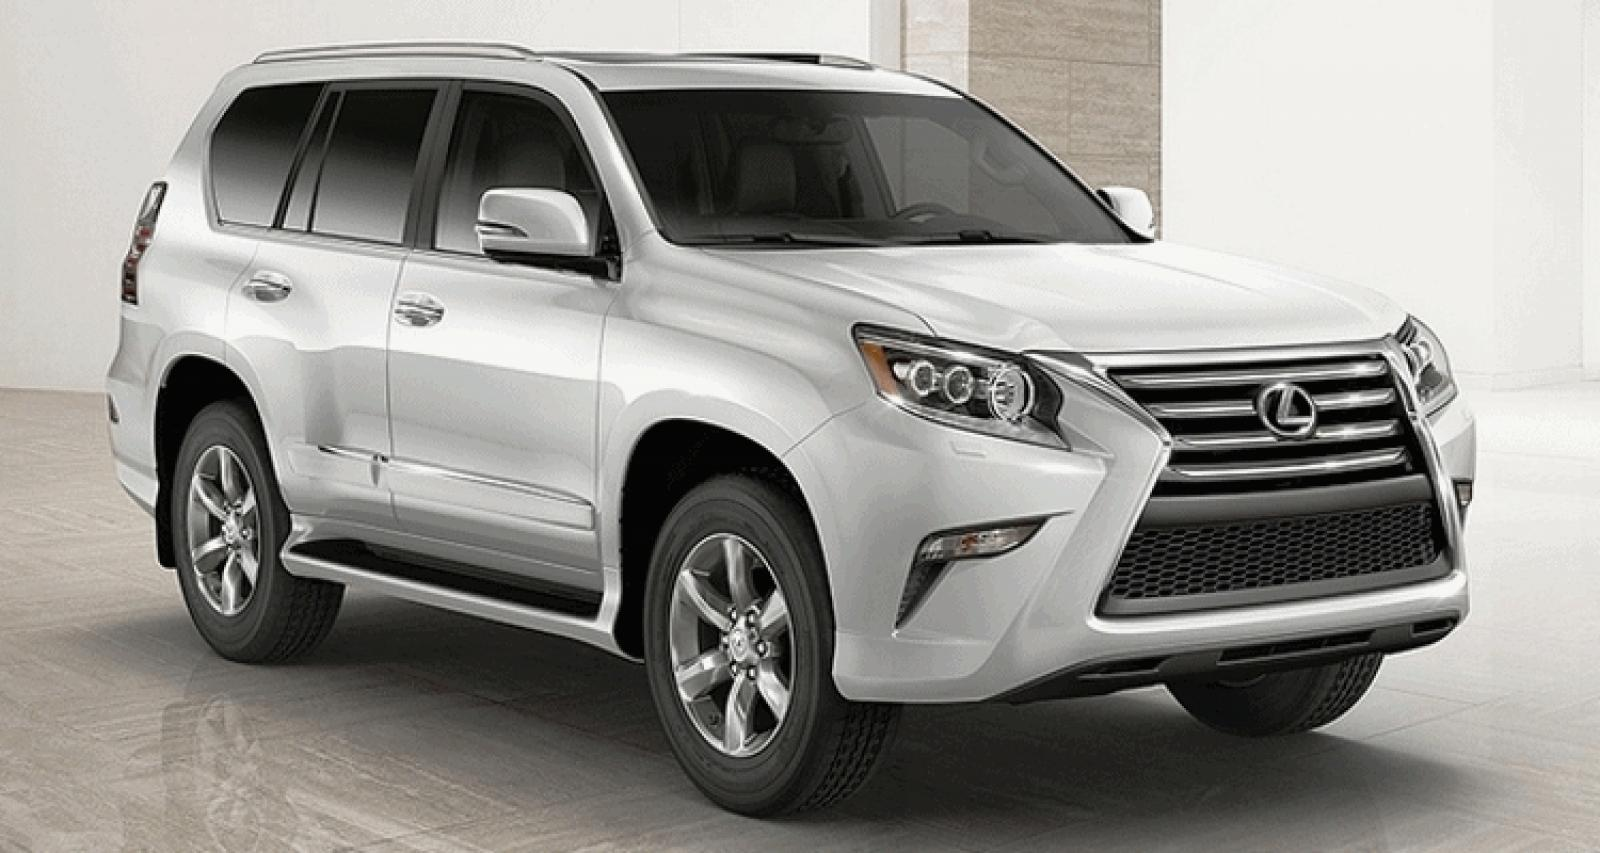 2015 lexus gx 460 information and photos zombiedrive. Black Bedroom Furniture Sets. Home Design Ideas